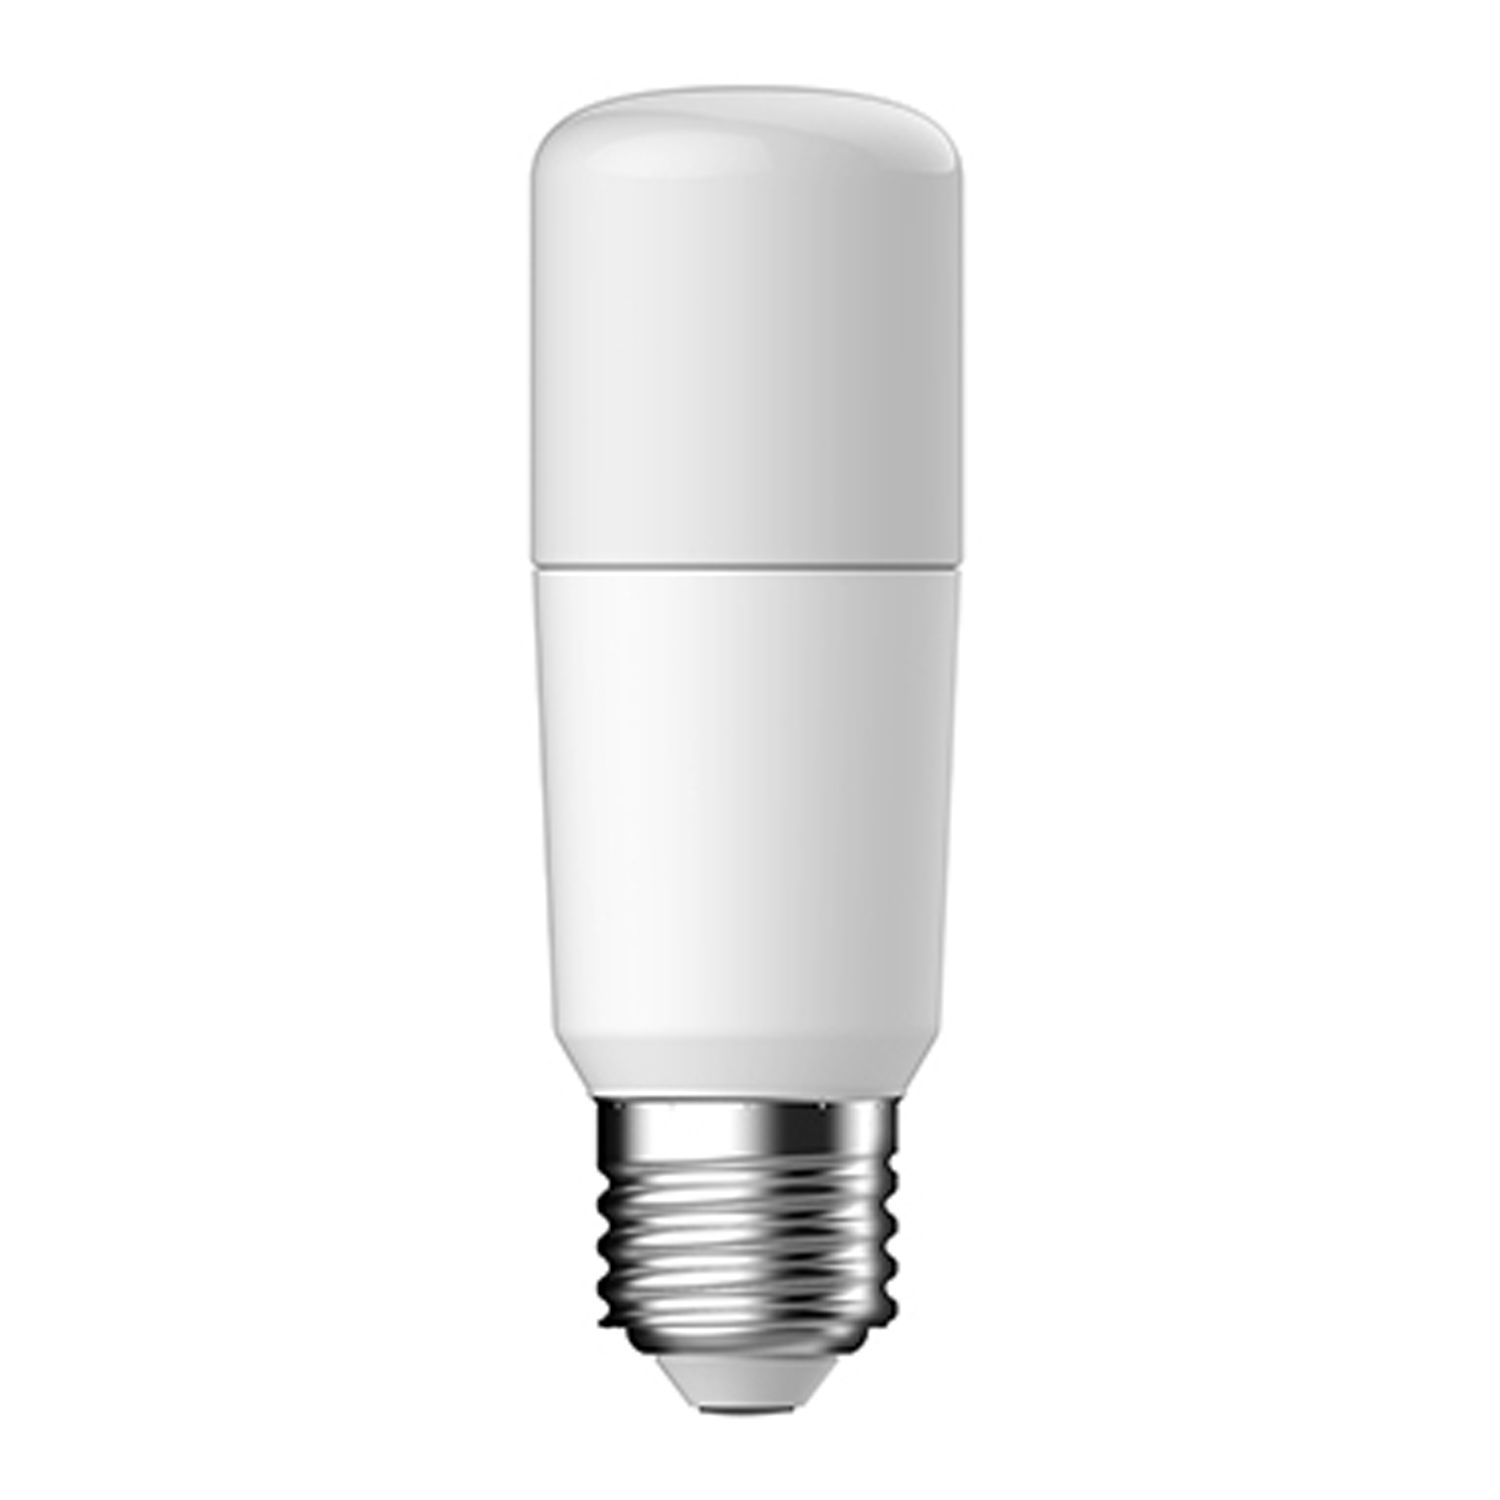 Tungsram Bright Stik LED E27 12W 865 Frosted | Daylight - Replaces 75W